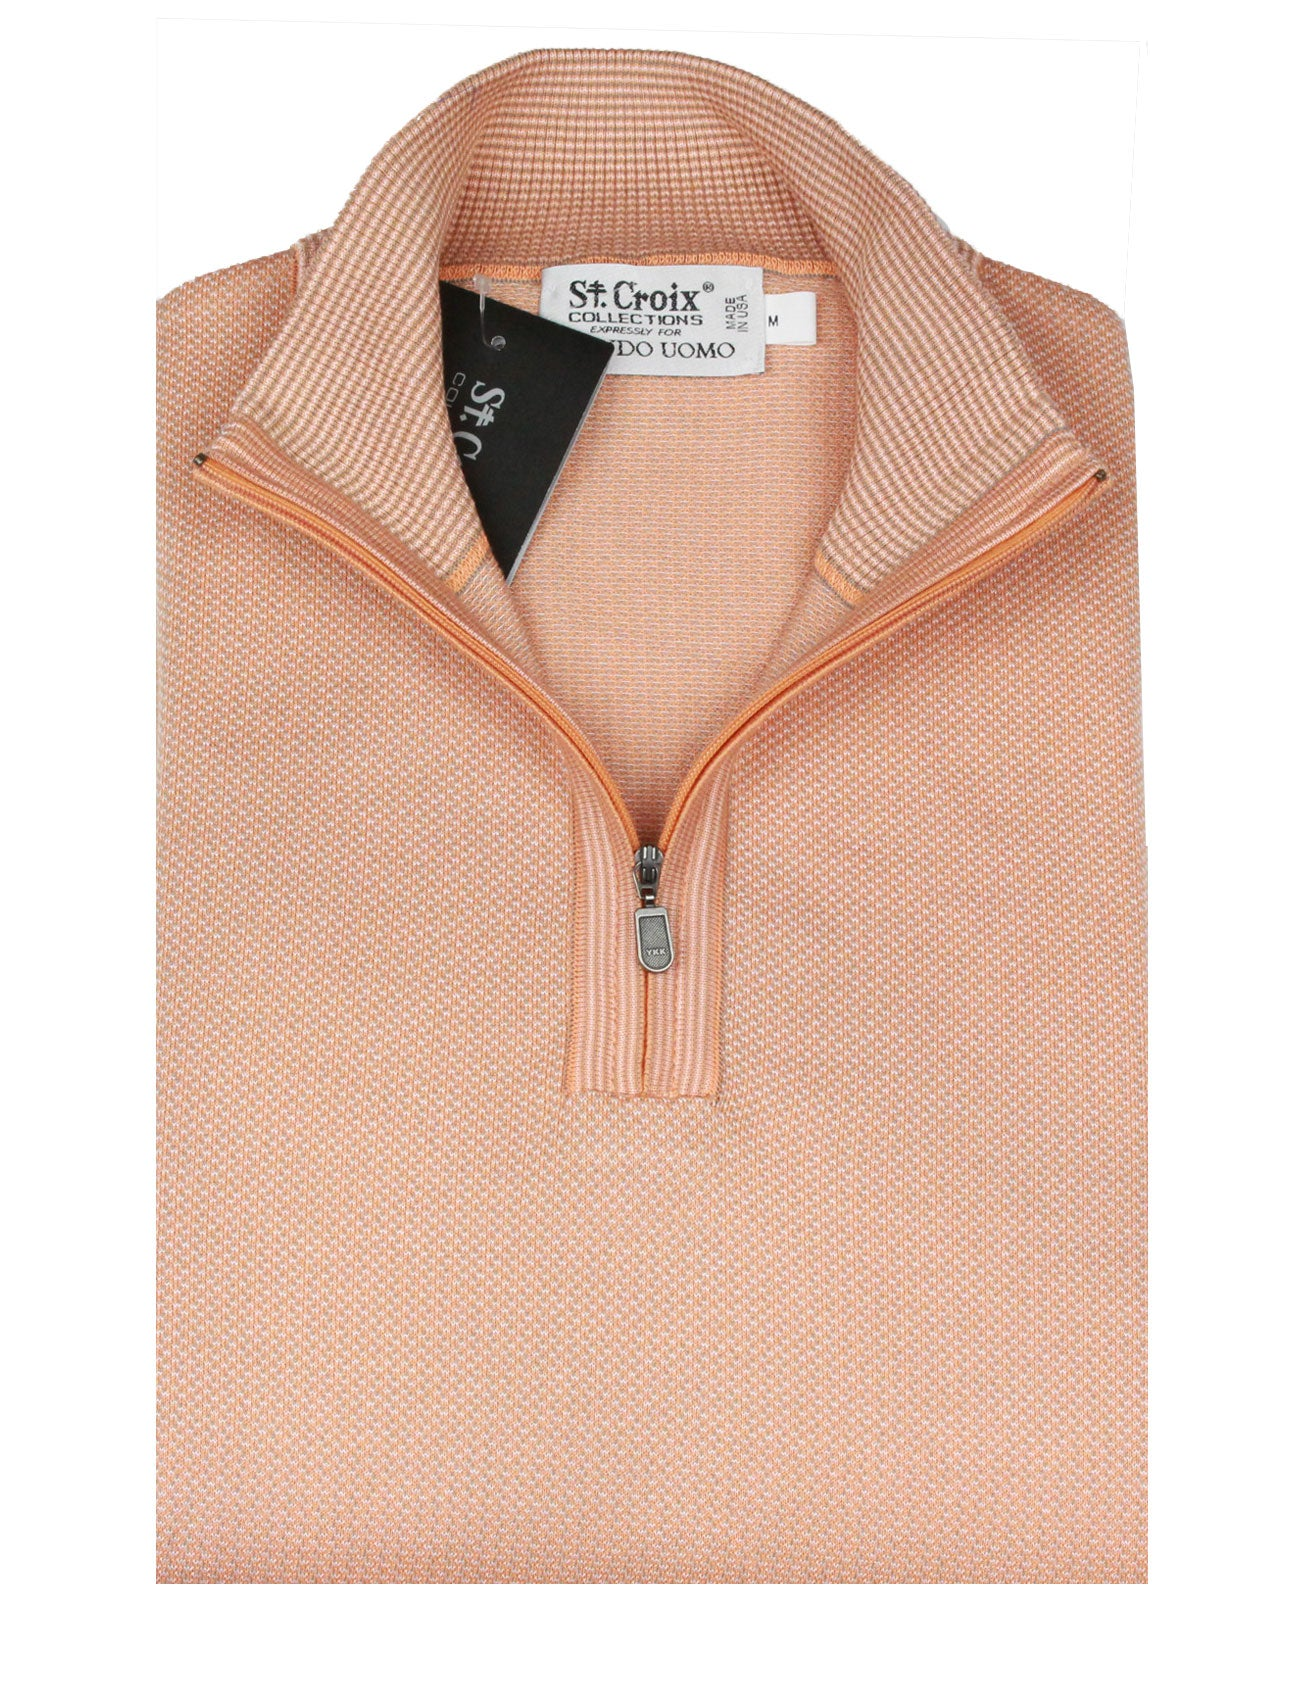 St Croix Sweater Zip Mock Nectar